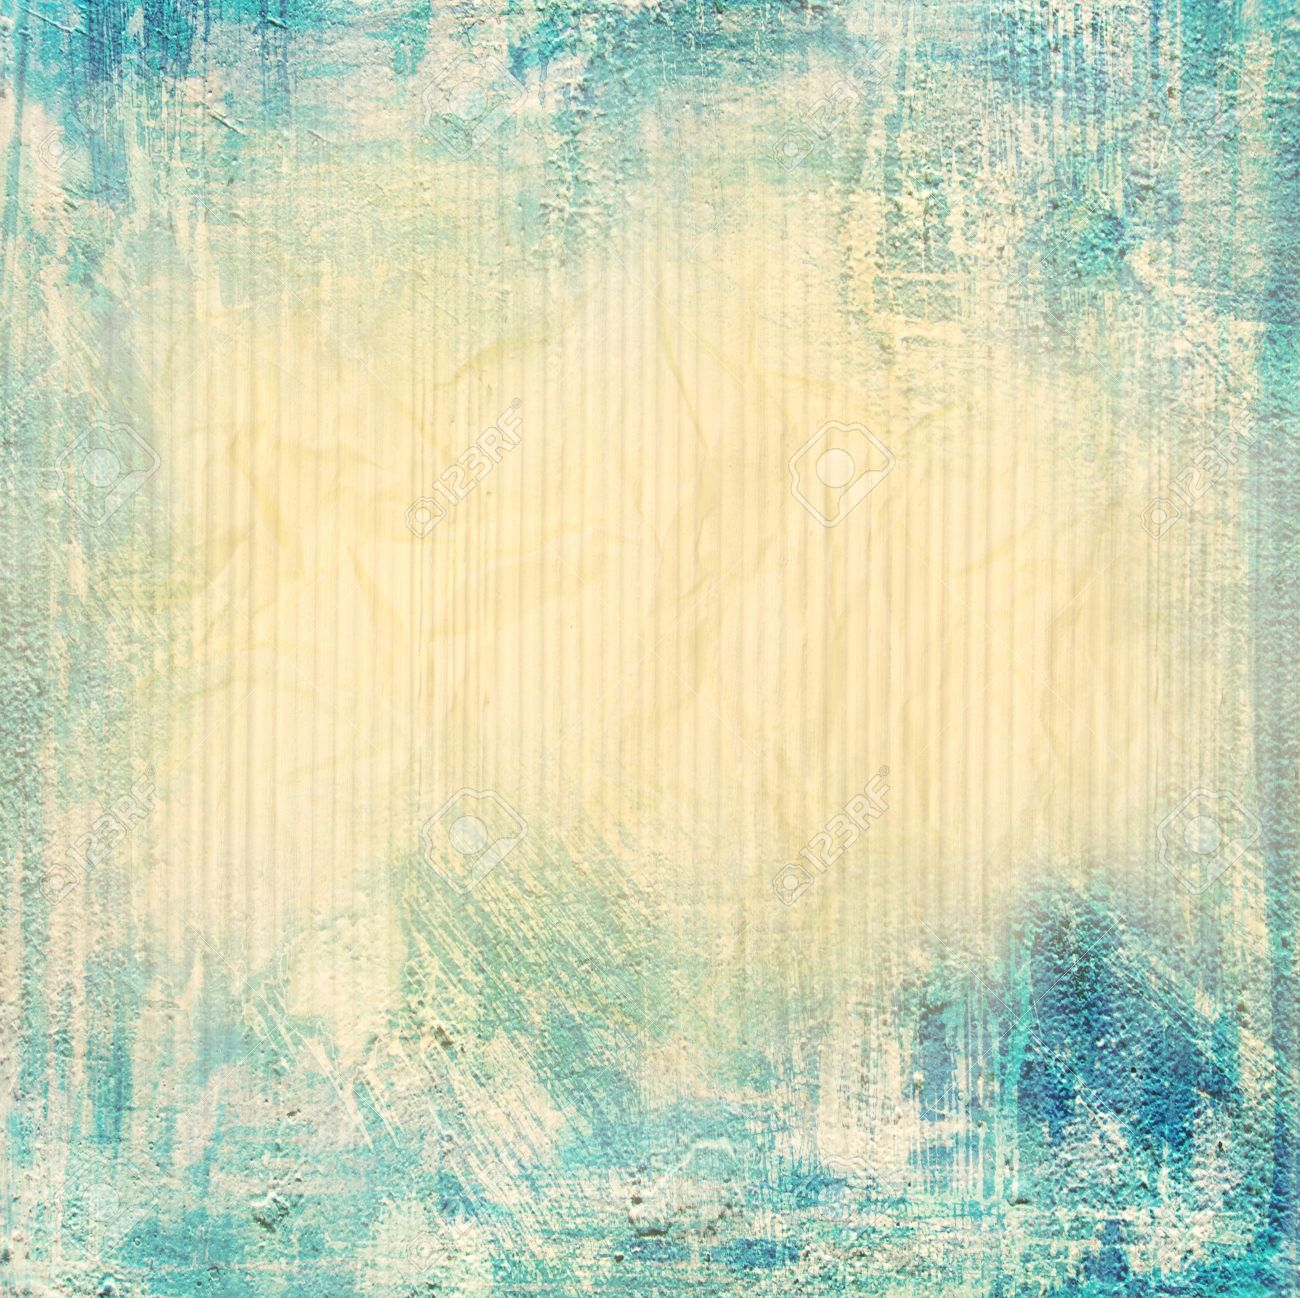 Designed grunge texture / paint background. For vintage wallpaper, old paper, and art border frame Stock Photo - 17049403